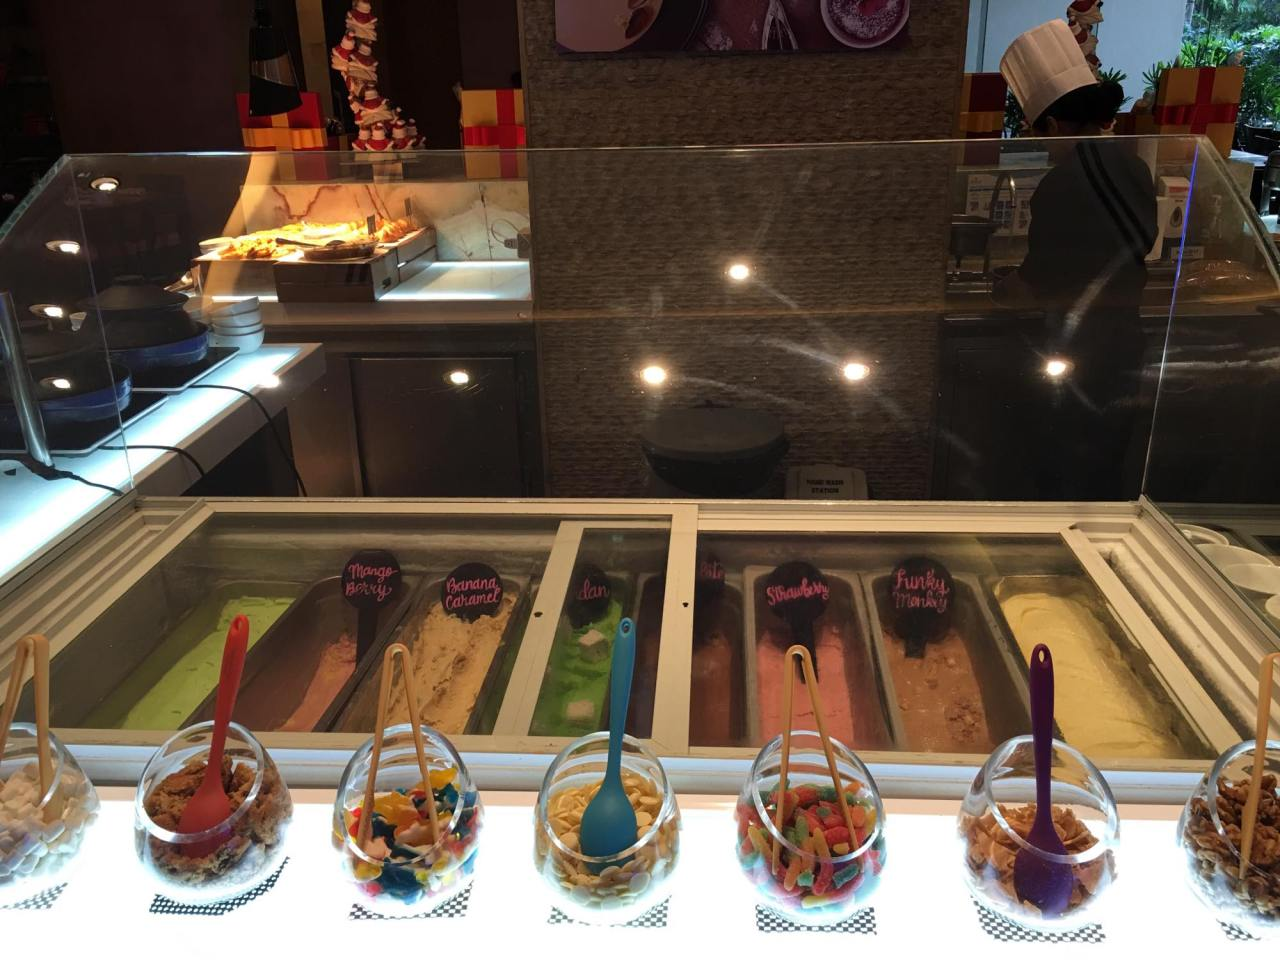 ice cream choices in our buffet breakfast at the HEAT (Edsa Shangri-la)